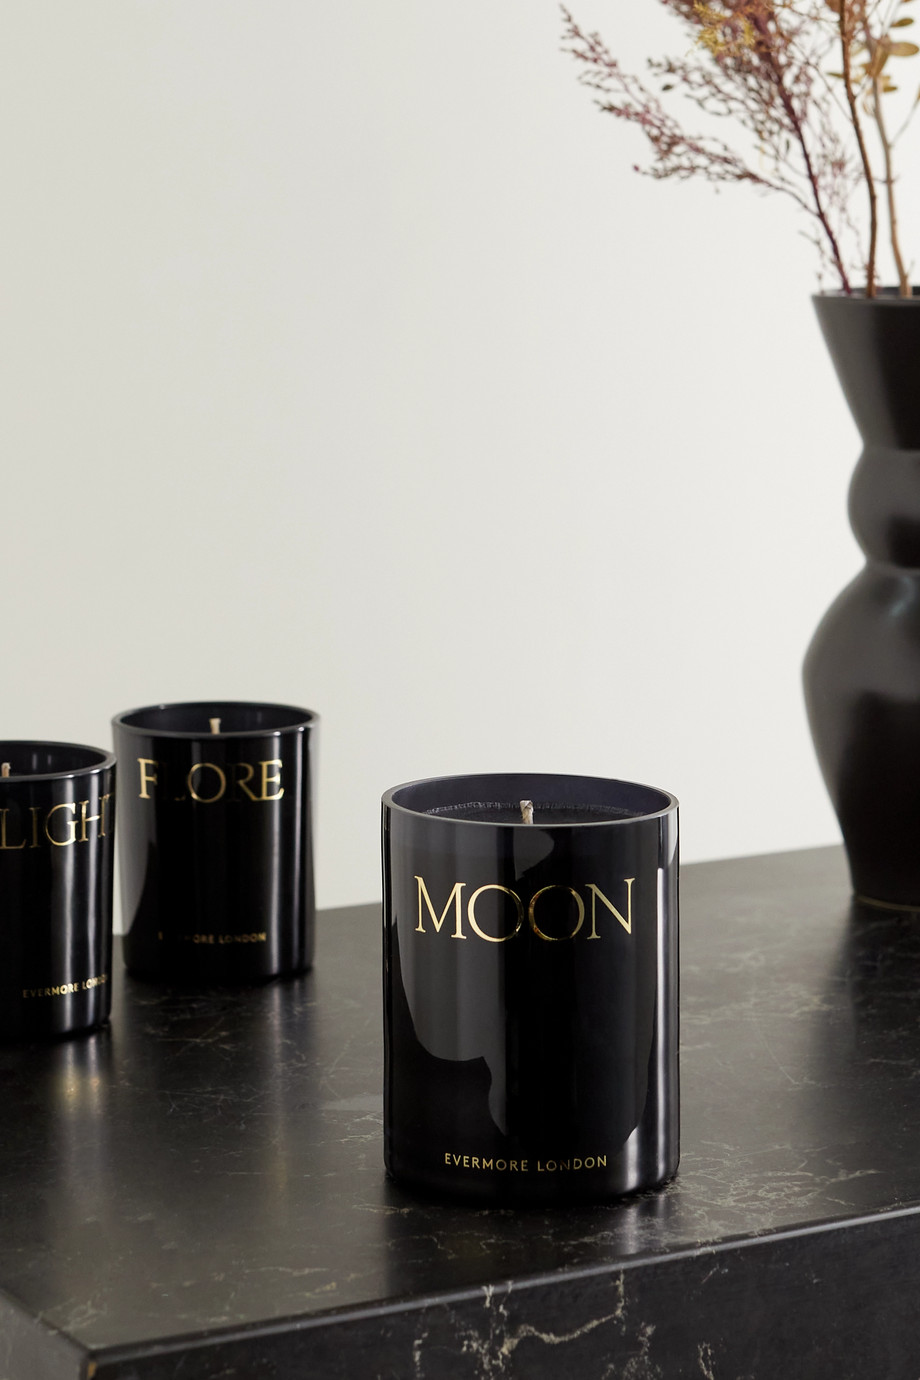 Evermore Moon scented candle - Smoke & Night Rose, 300g